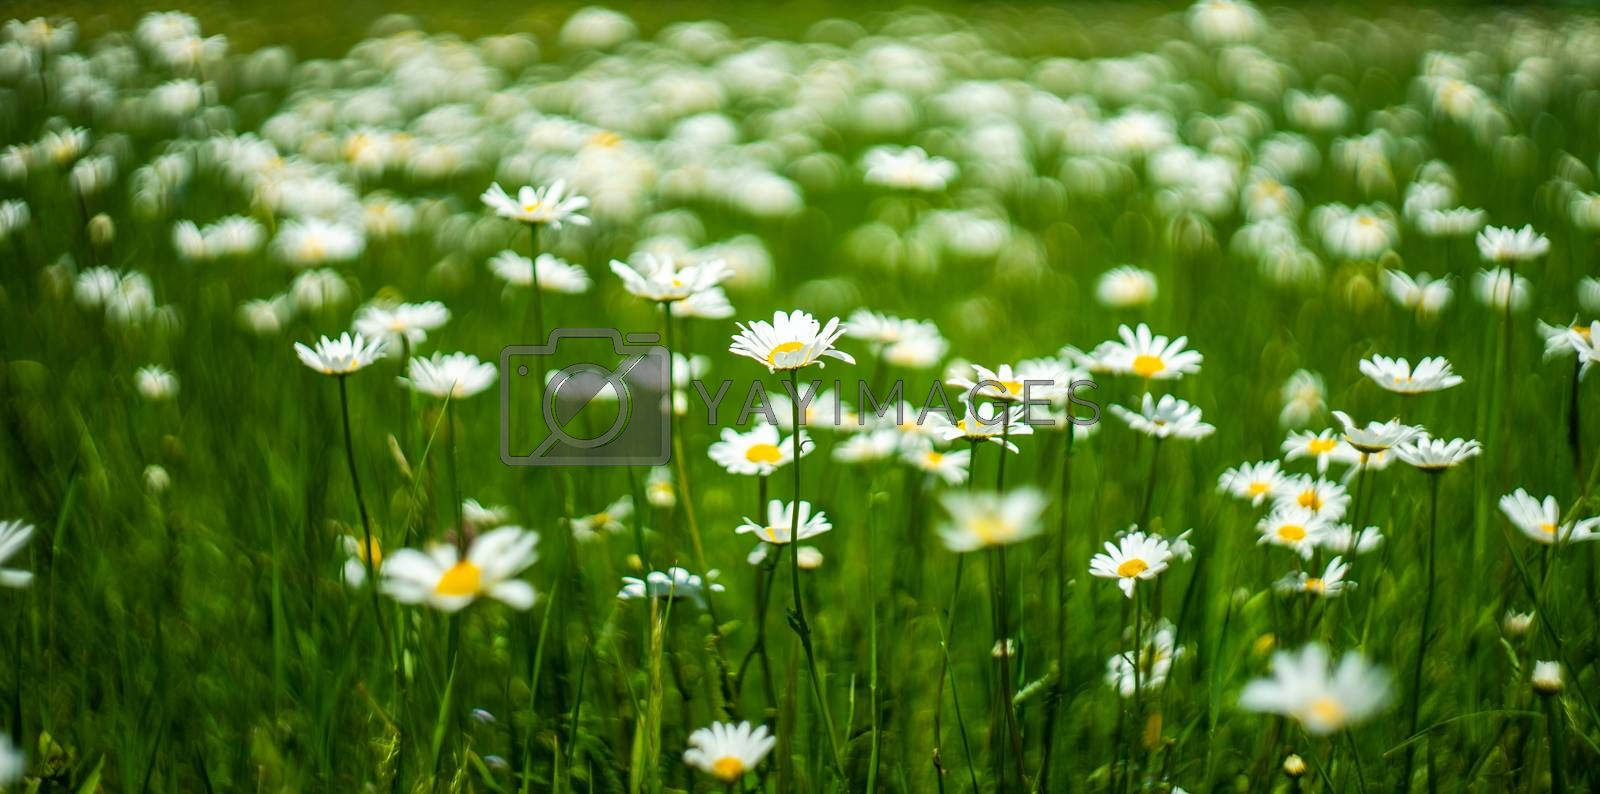 White daisies in the wild field as a natural card